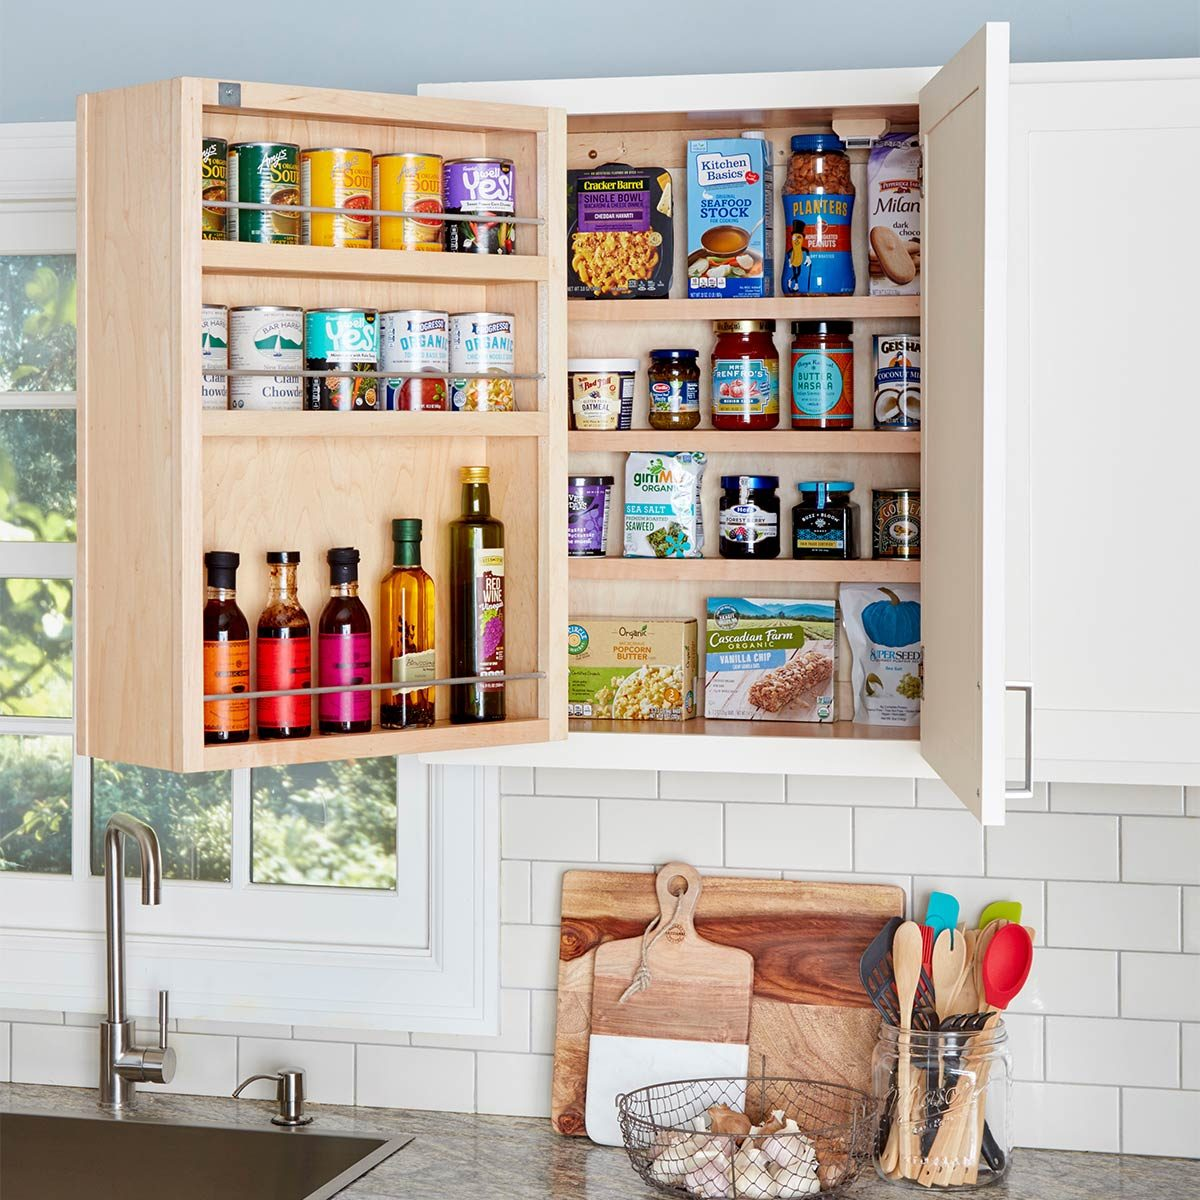 41 Genius Kitchen Organization Ideas! | The Family Handyman